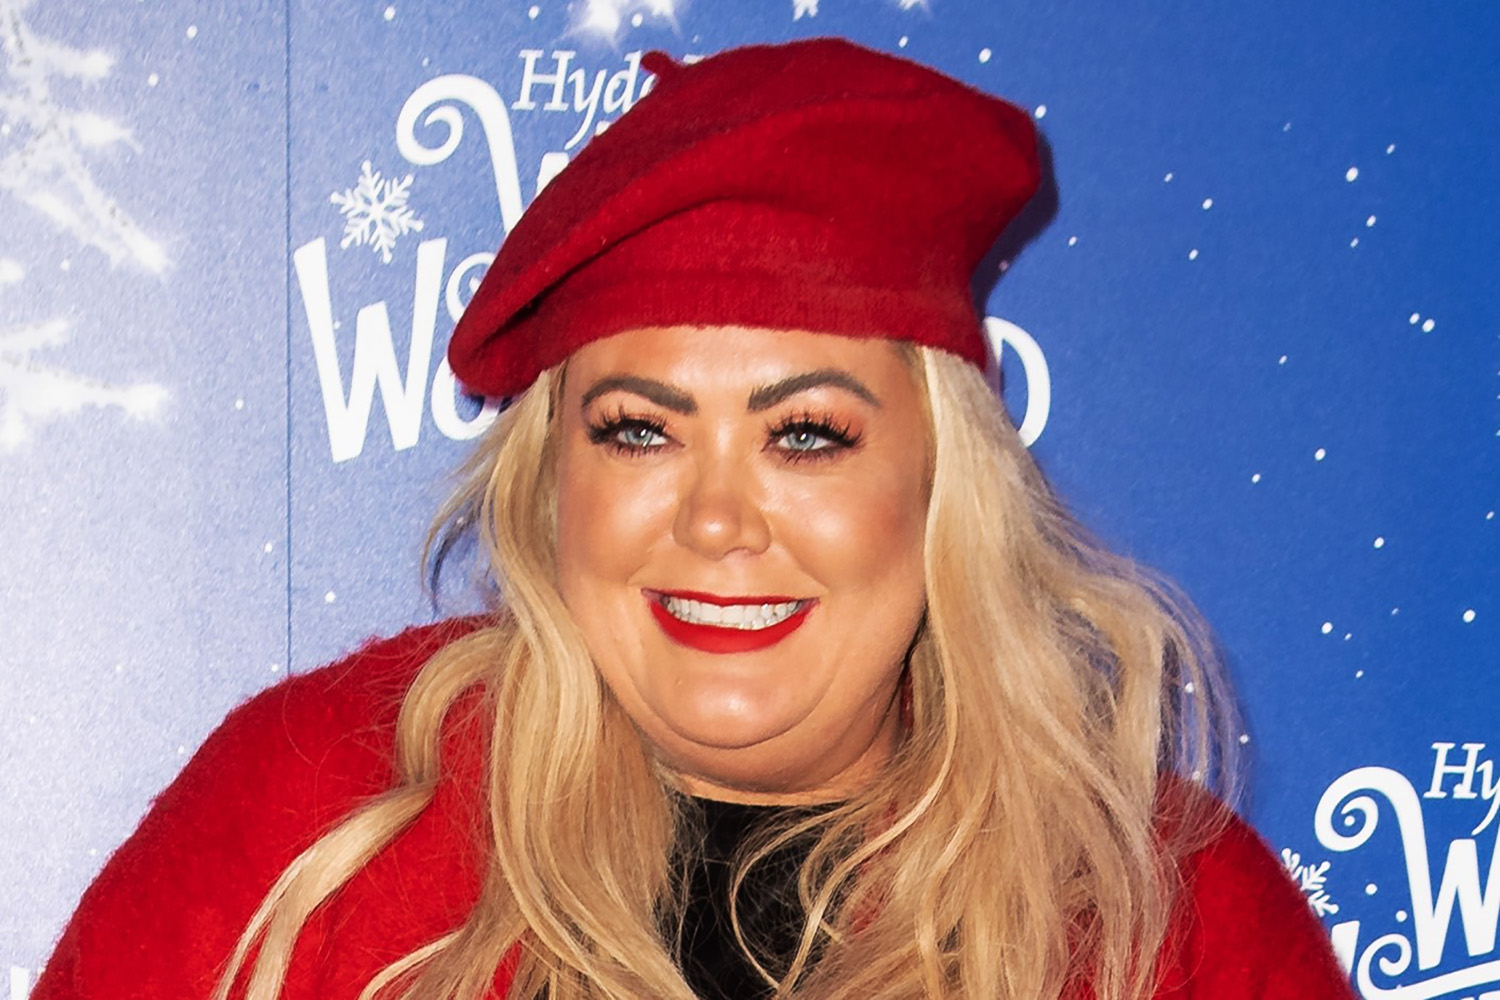 Gemma Collins stuns in gym wear as she works out abroad